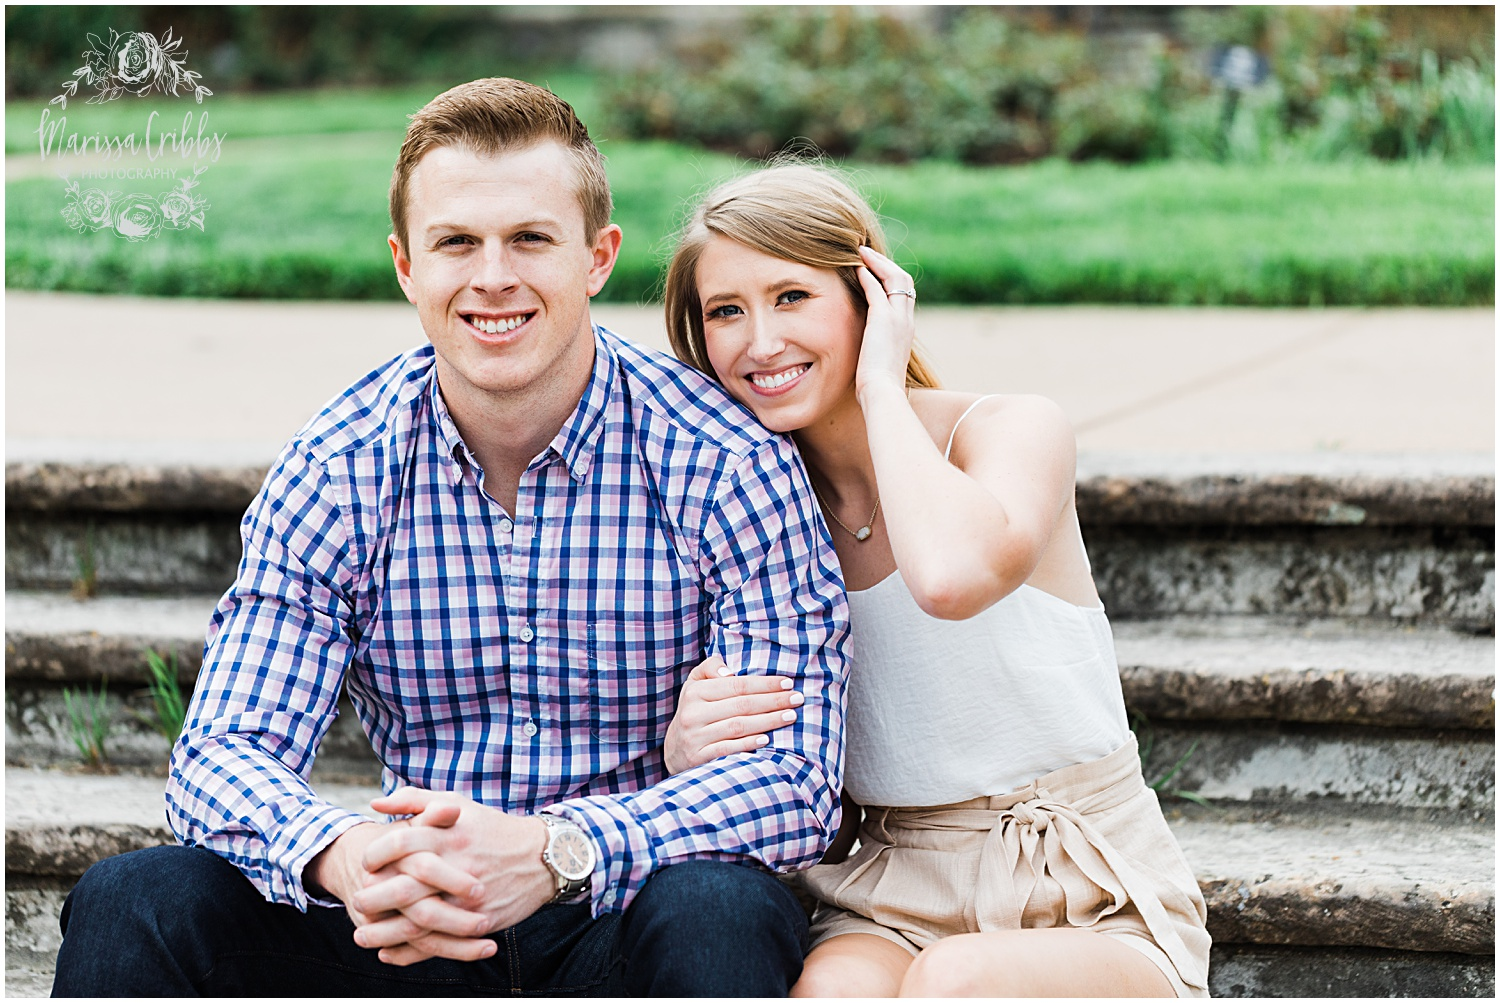 MADDY & KYLE ENGAGEMENT | MARISSA CRIBBS PHOTOGRAPHY_7611.jpg